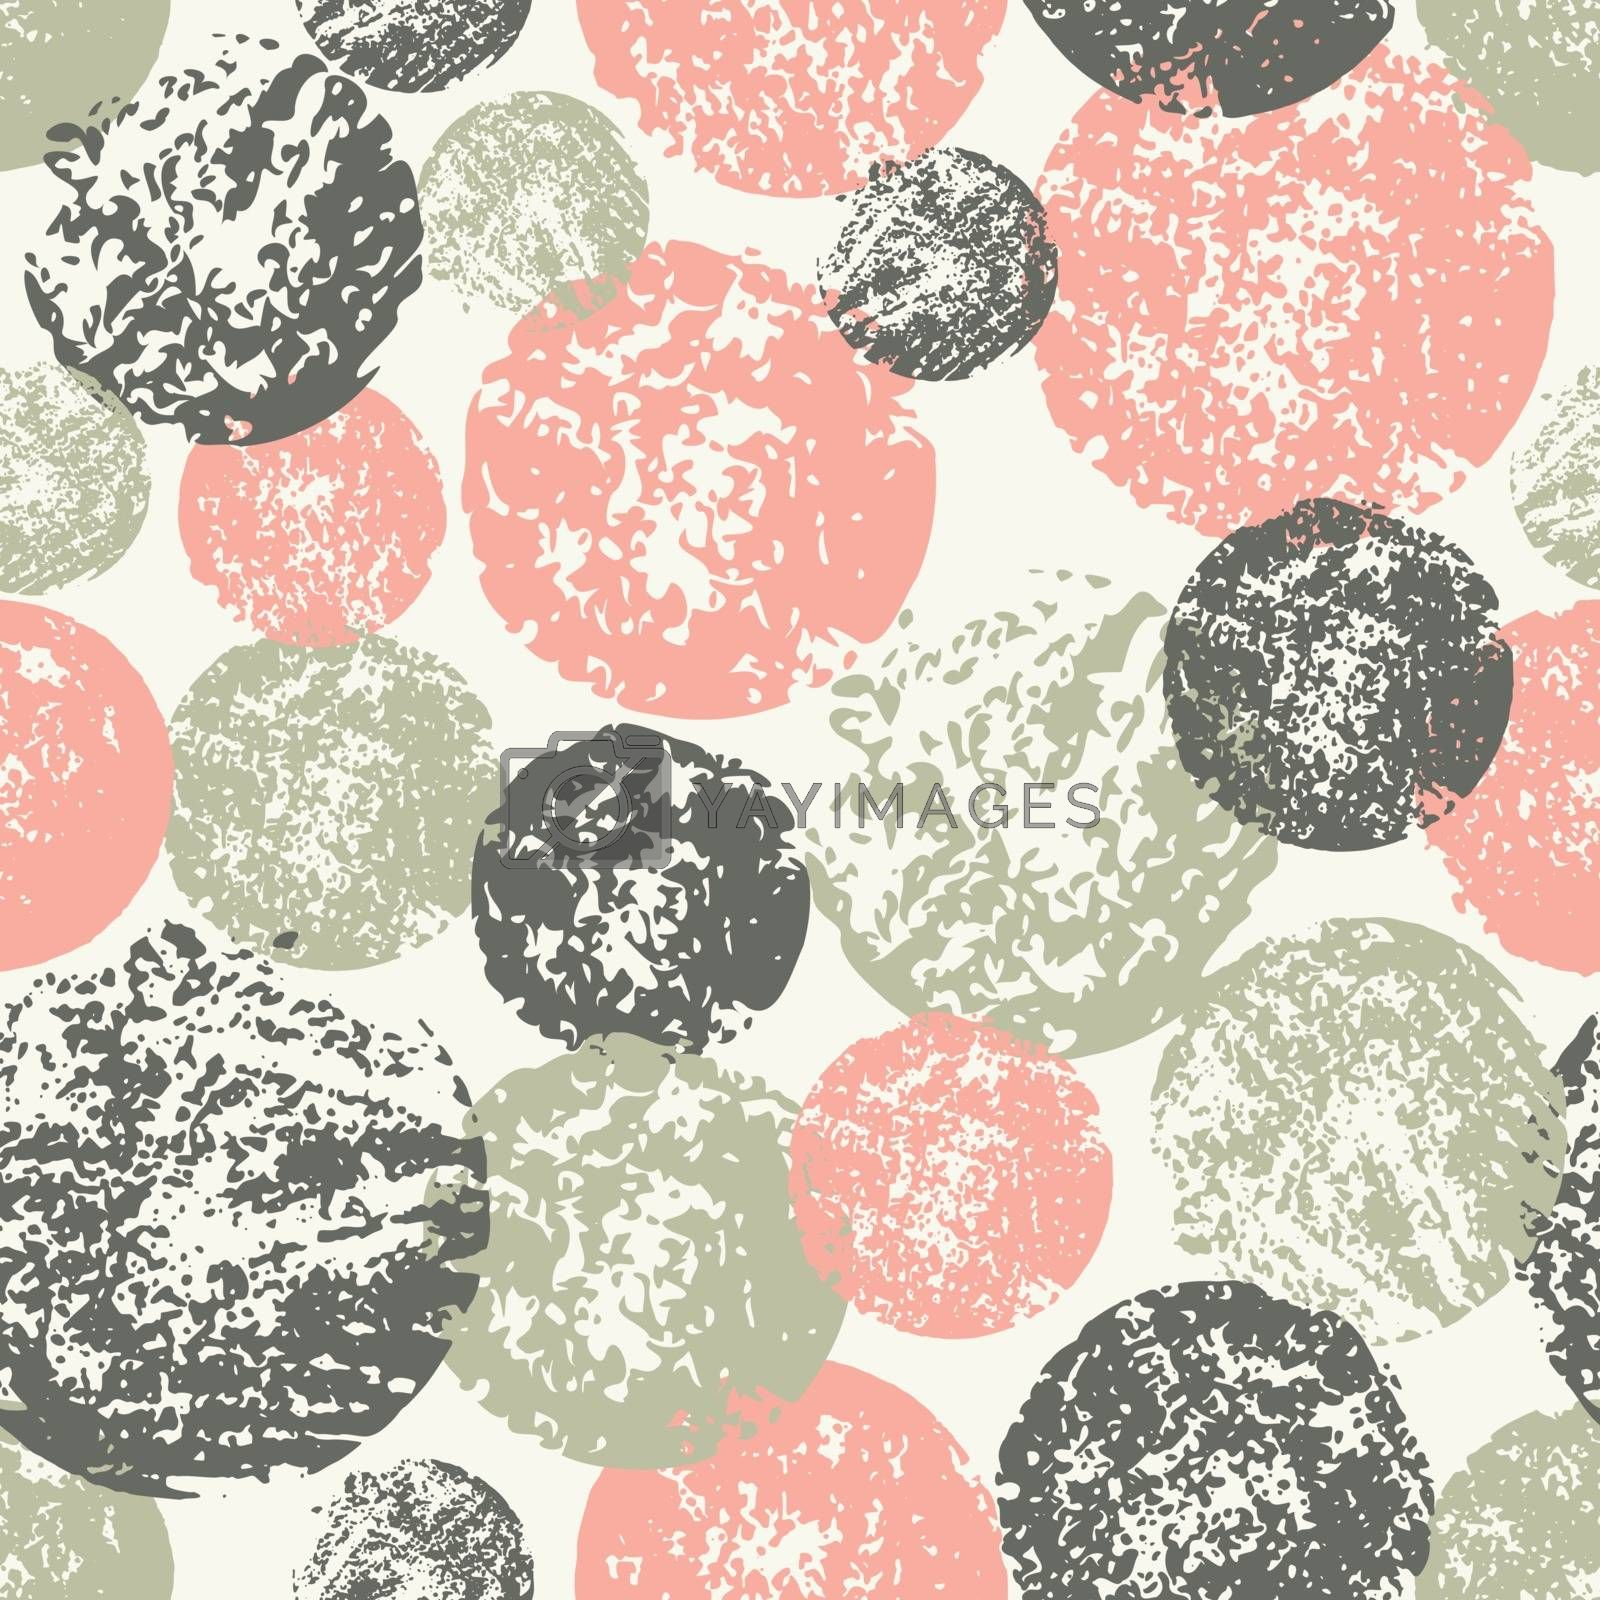 Abstract Round Shapes Seamless Pattern by ivaleksa